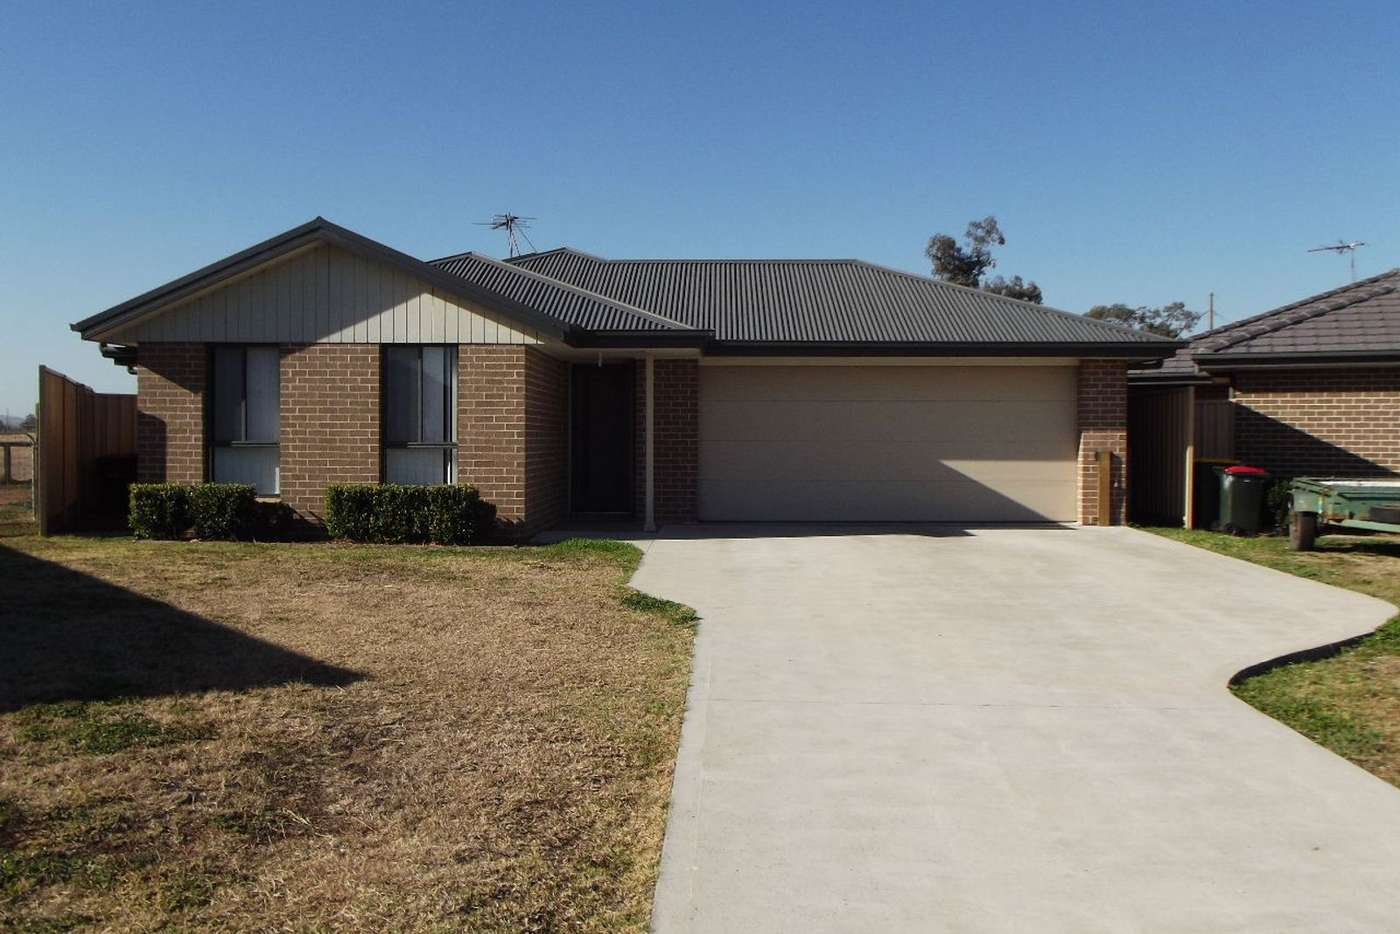 Main view of Homely house listing, 13 Kerrabee Close, Denman NSW 2328